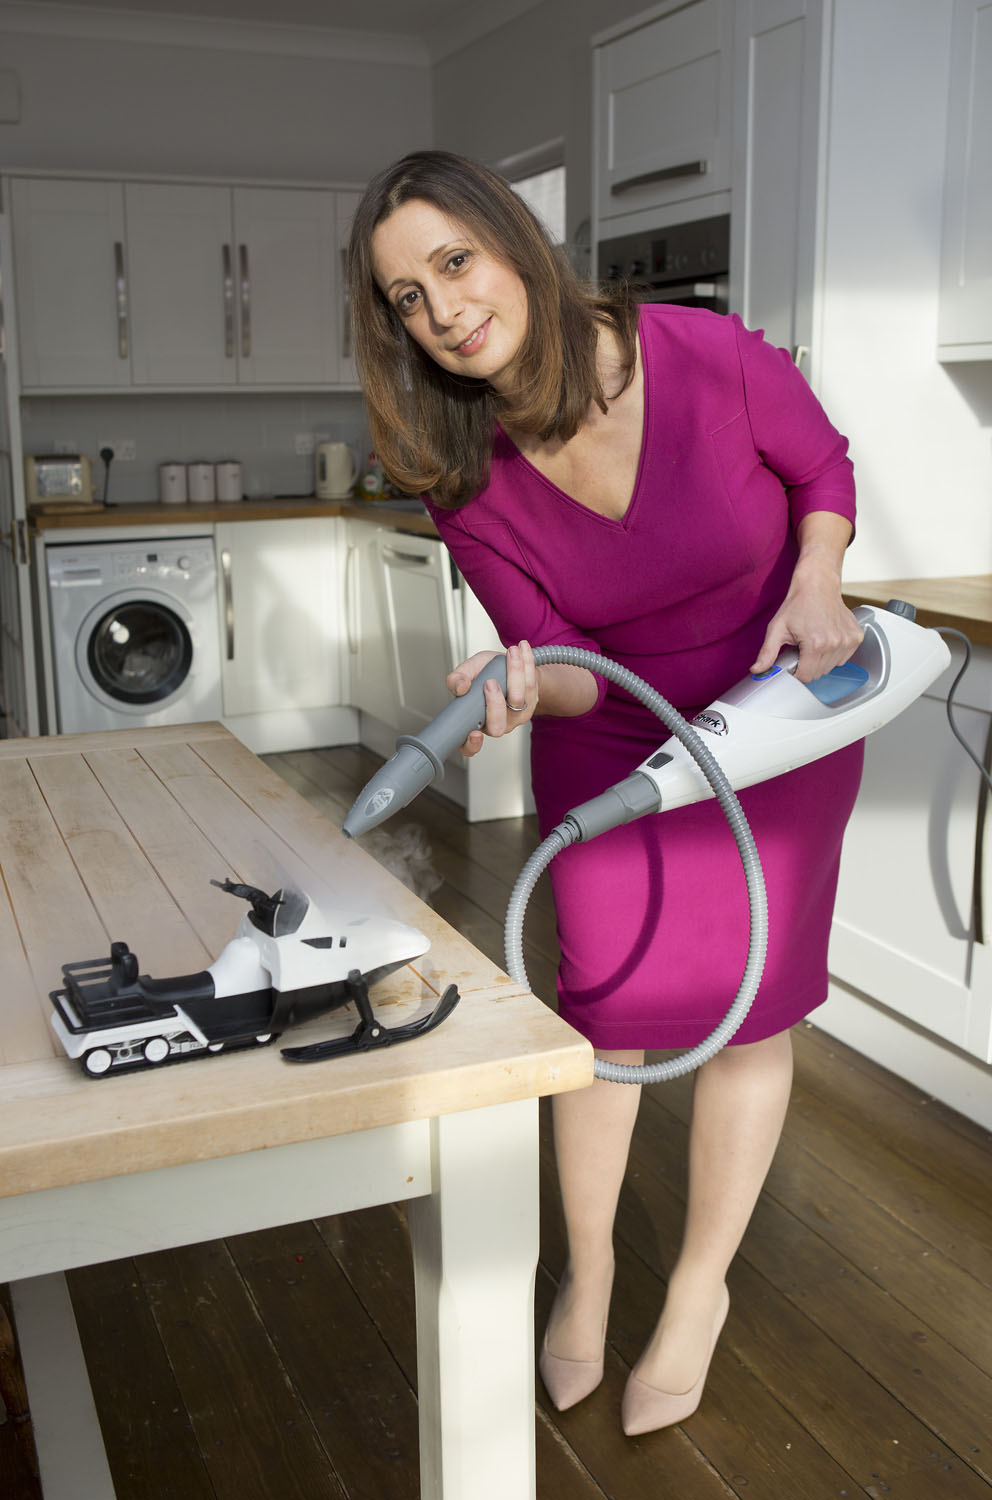 http://www.dailymail.co.uk/femail/article-3419903/The-hot-new-way-steam-cleaning-dirt-curtains-oven-toys-ONE-gadget.html